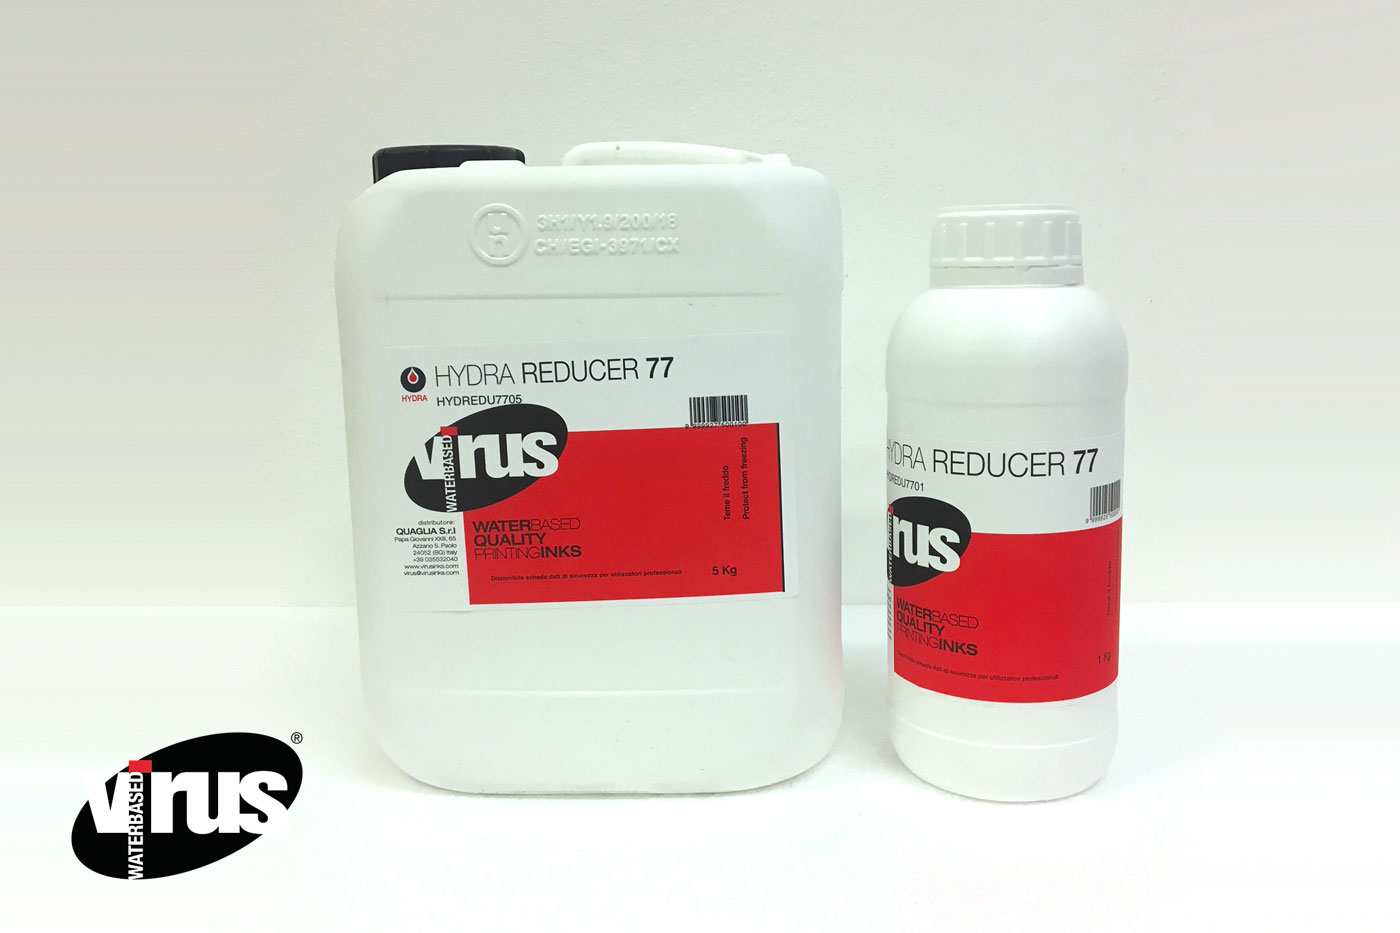 Virus Hydra Reducer 77